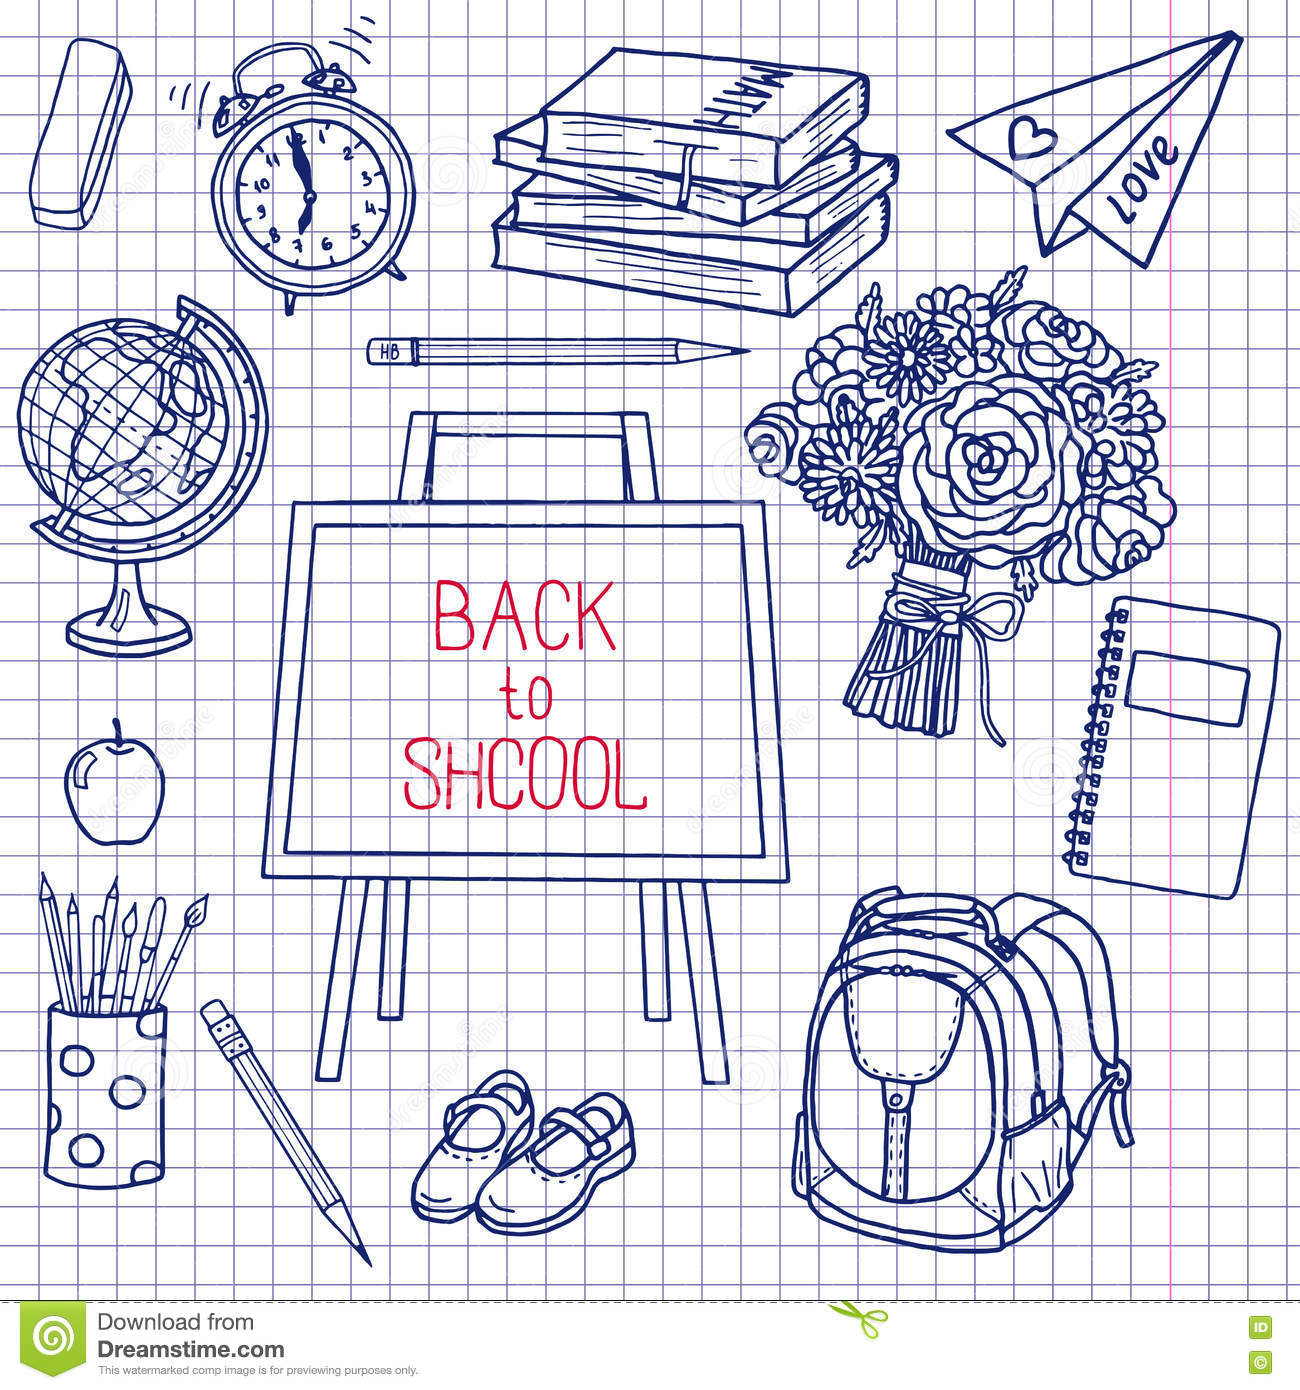 Back To School Supplies Sketchy Notebook Doodles With ...